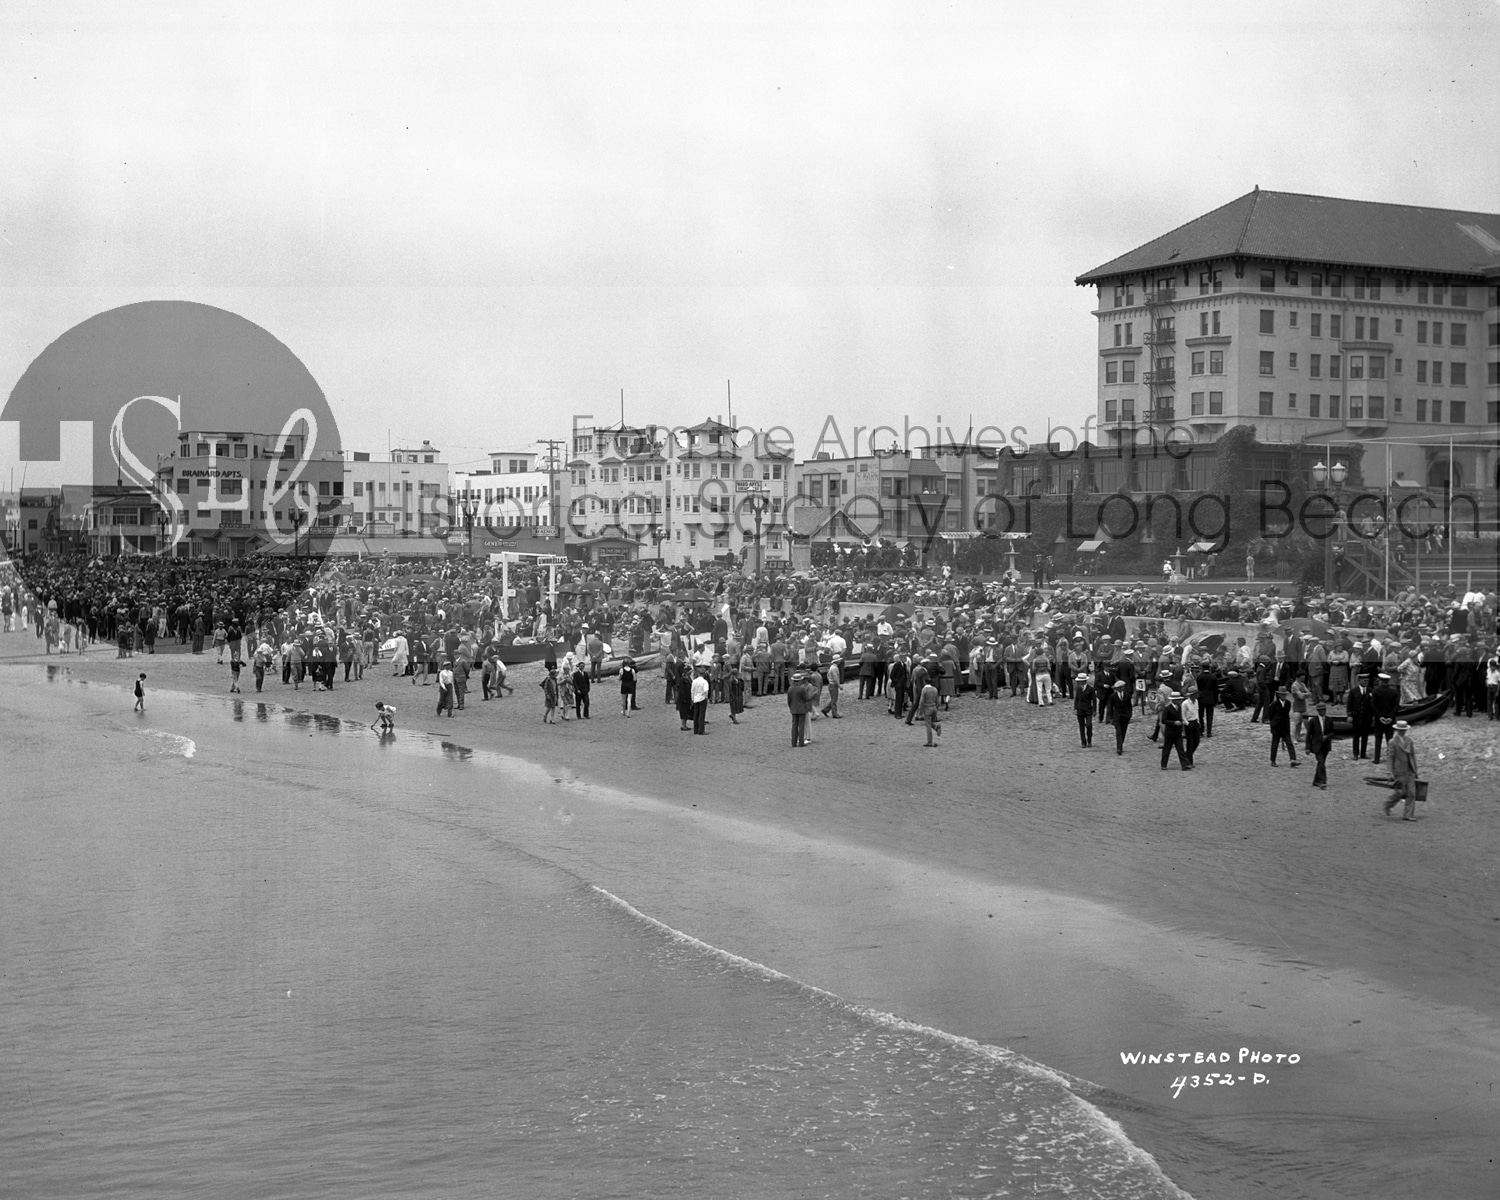 Beach photograph from the historical society